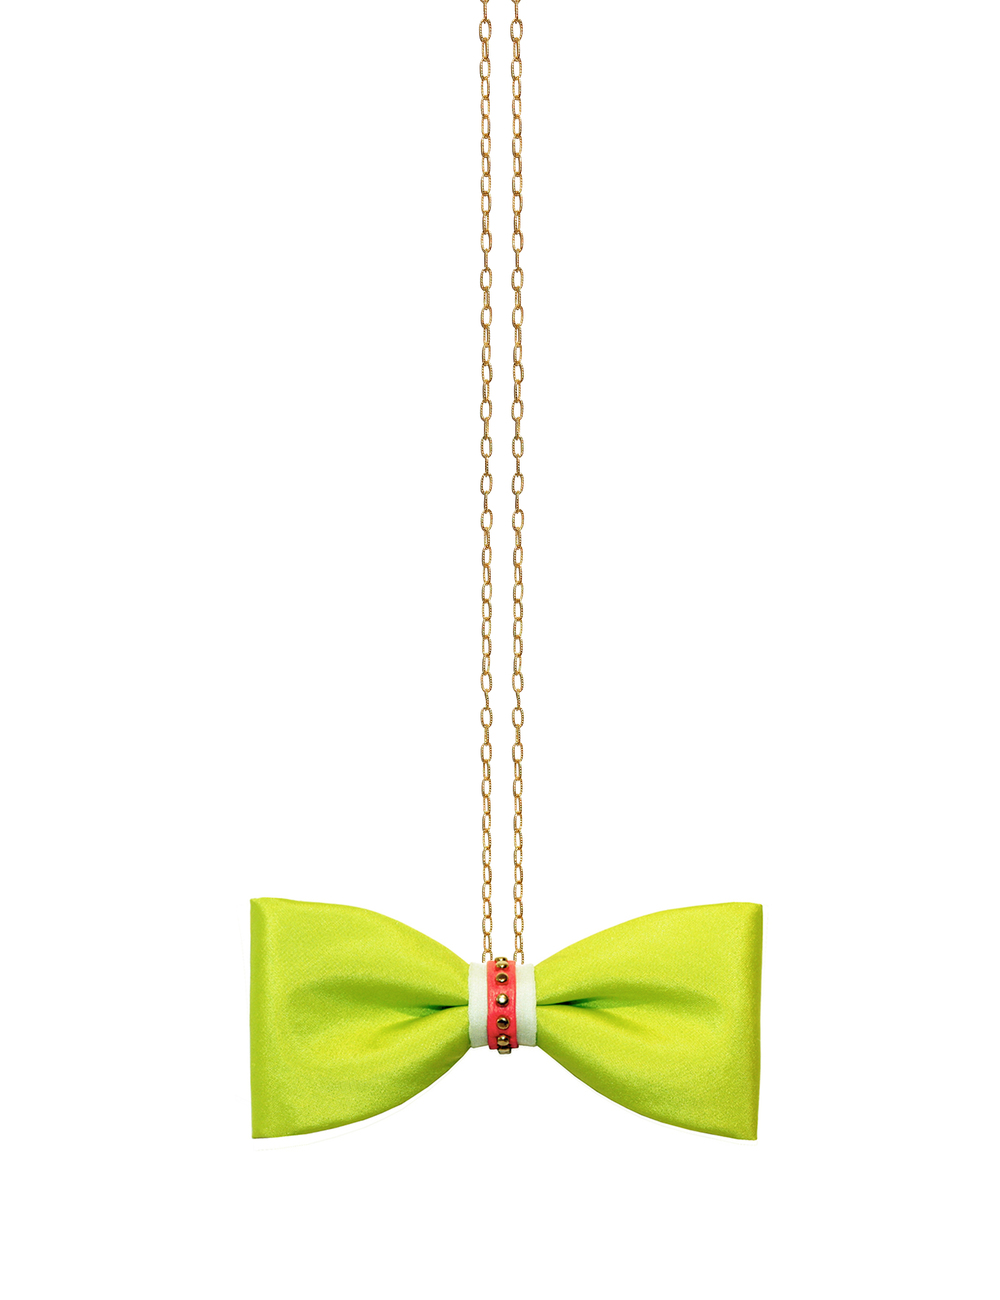 ZuZu Kim Green bow tie with chain  (1).jpg